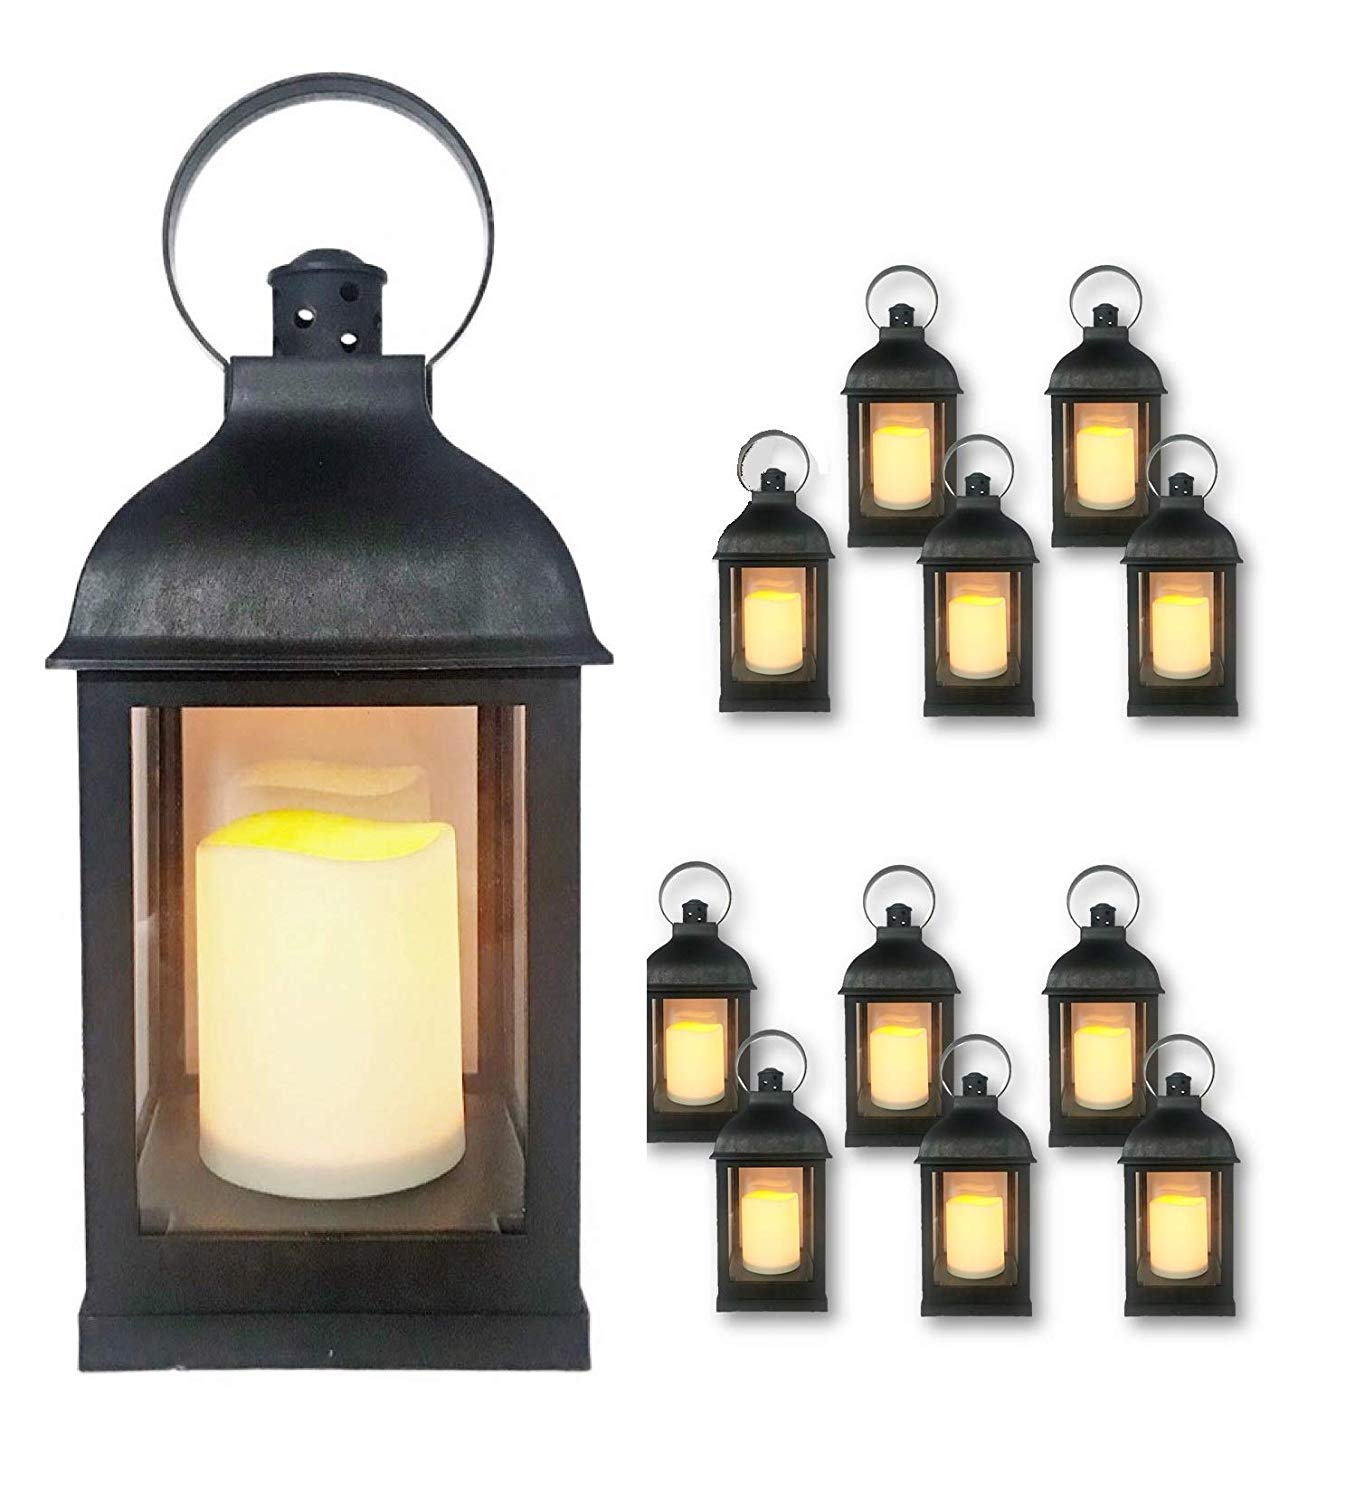 Decorative Lanterns with Flameless LED Candles